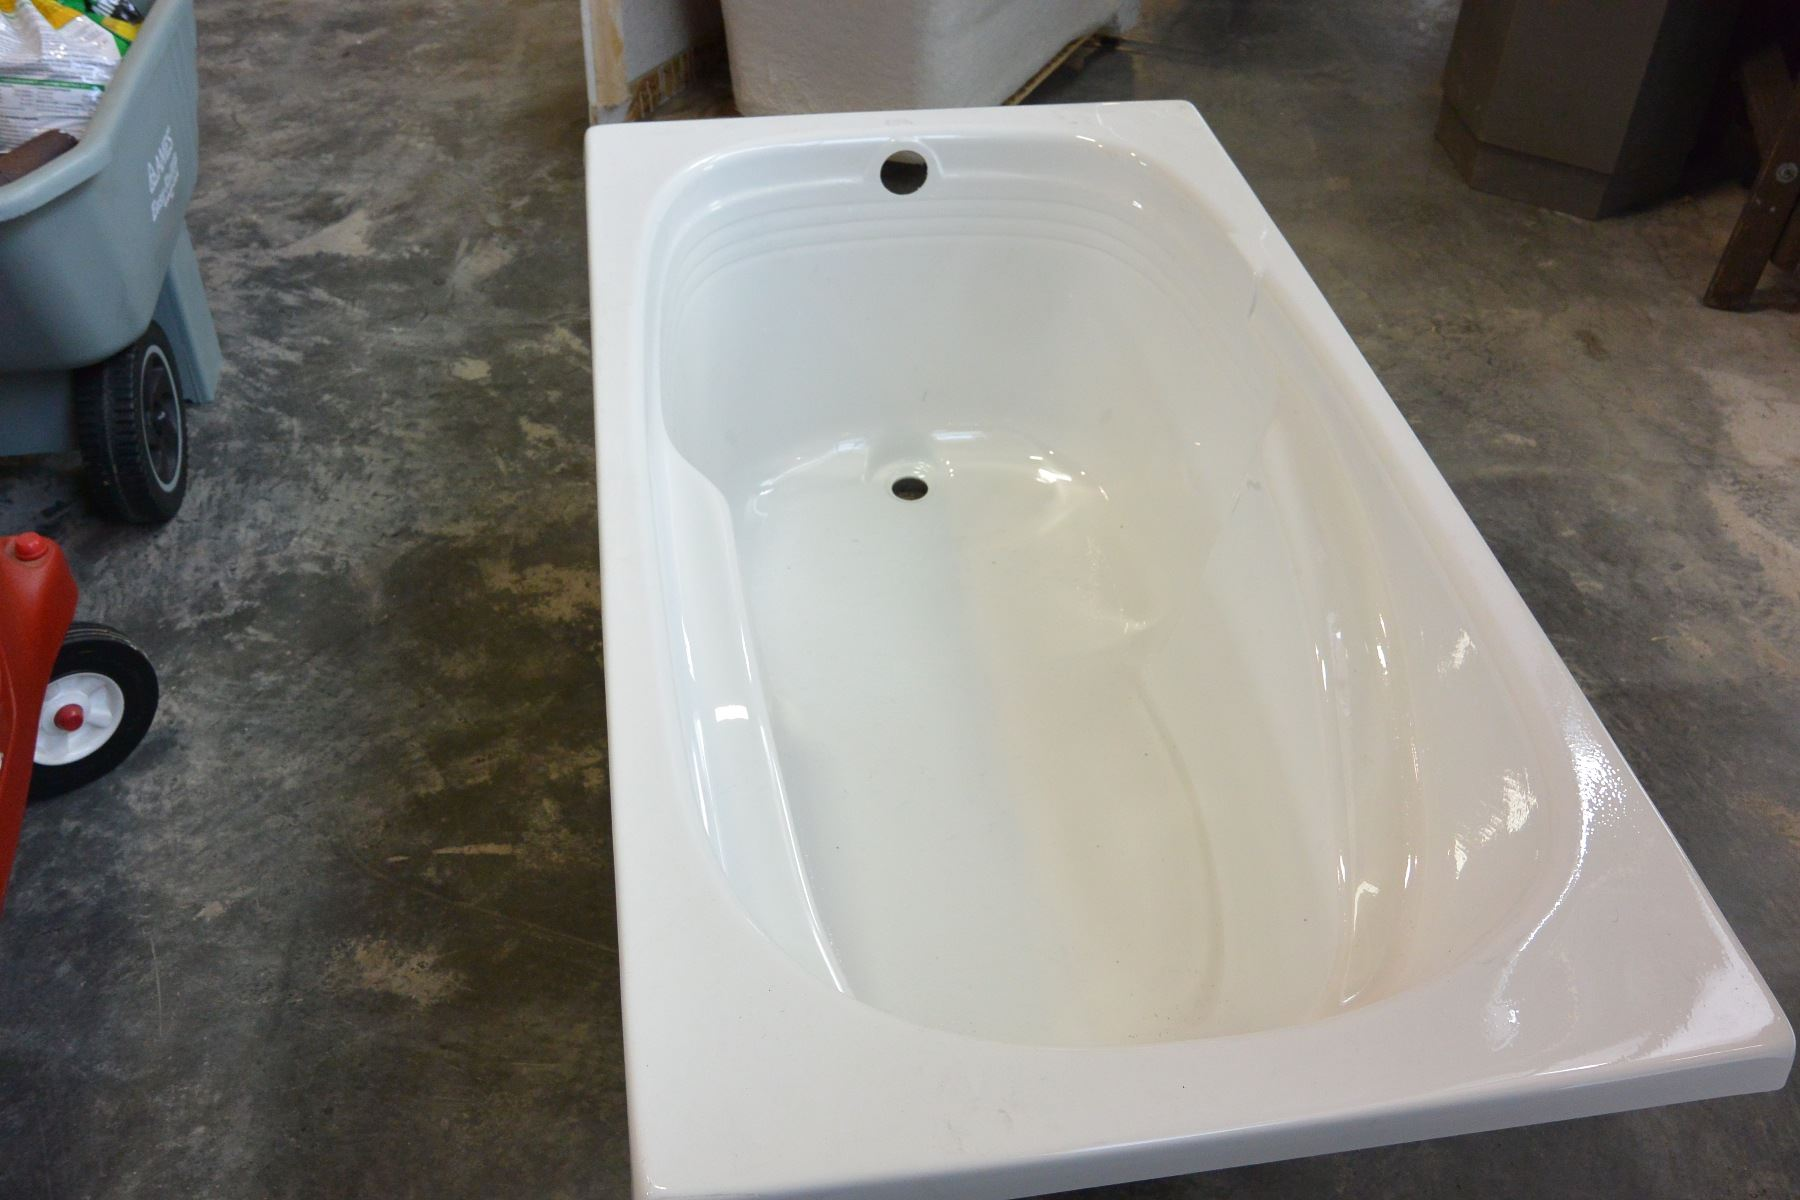 BATHTUB 5 FOOT BY 32 INCH BY 19 INCHES TALL